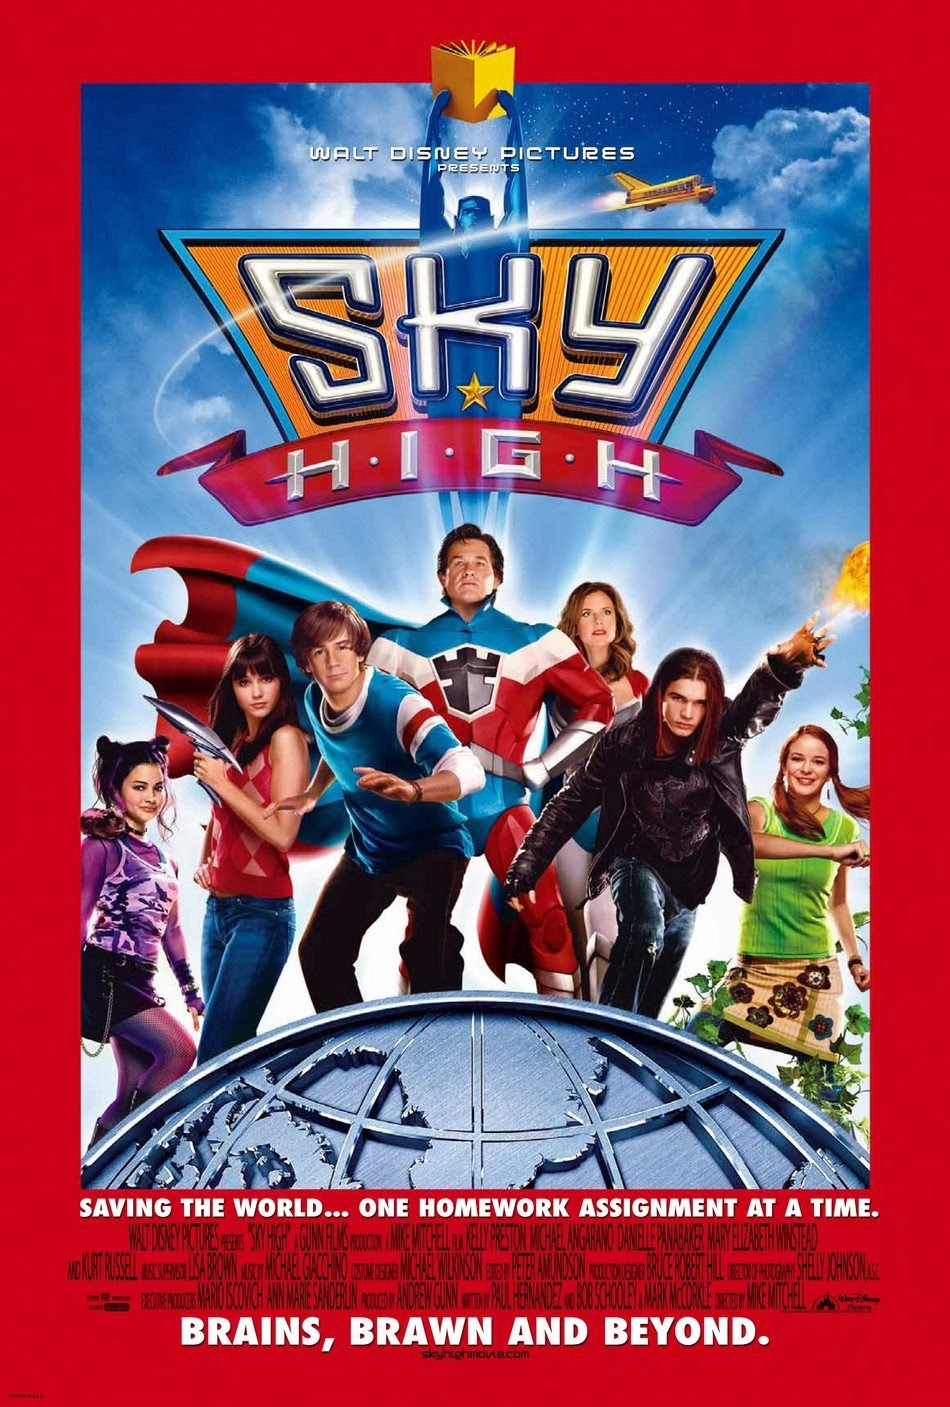 Watch Sky High (2005) Online For Free Full Movie English Stream